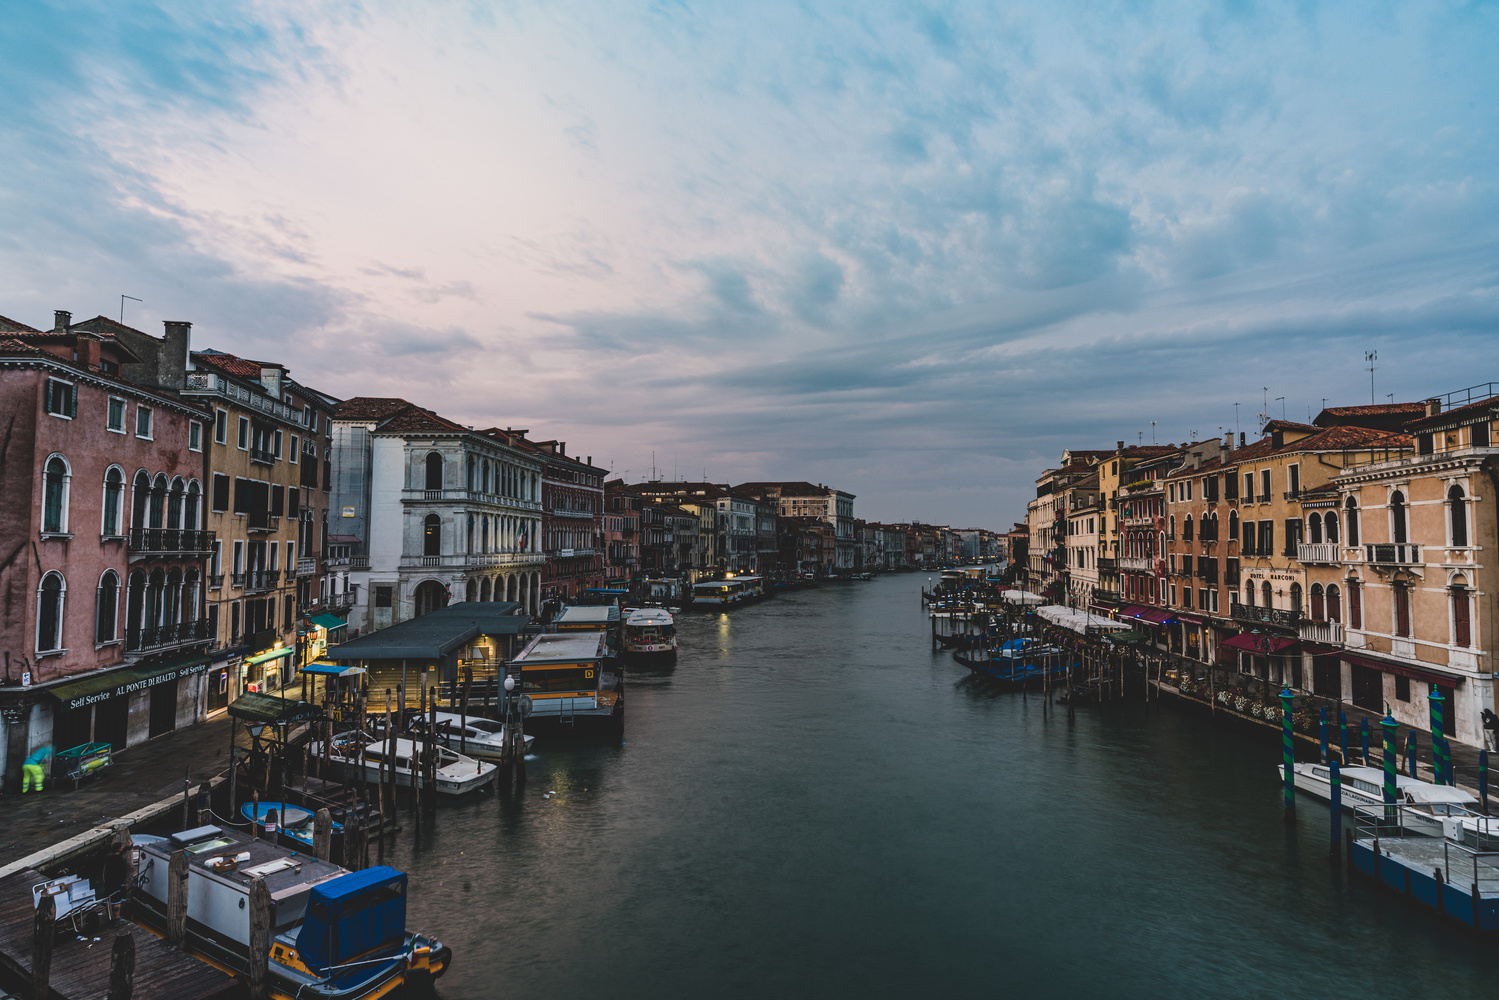 Venice, Italy by Ryan Fulkerson